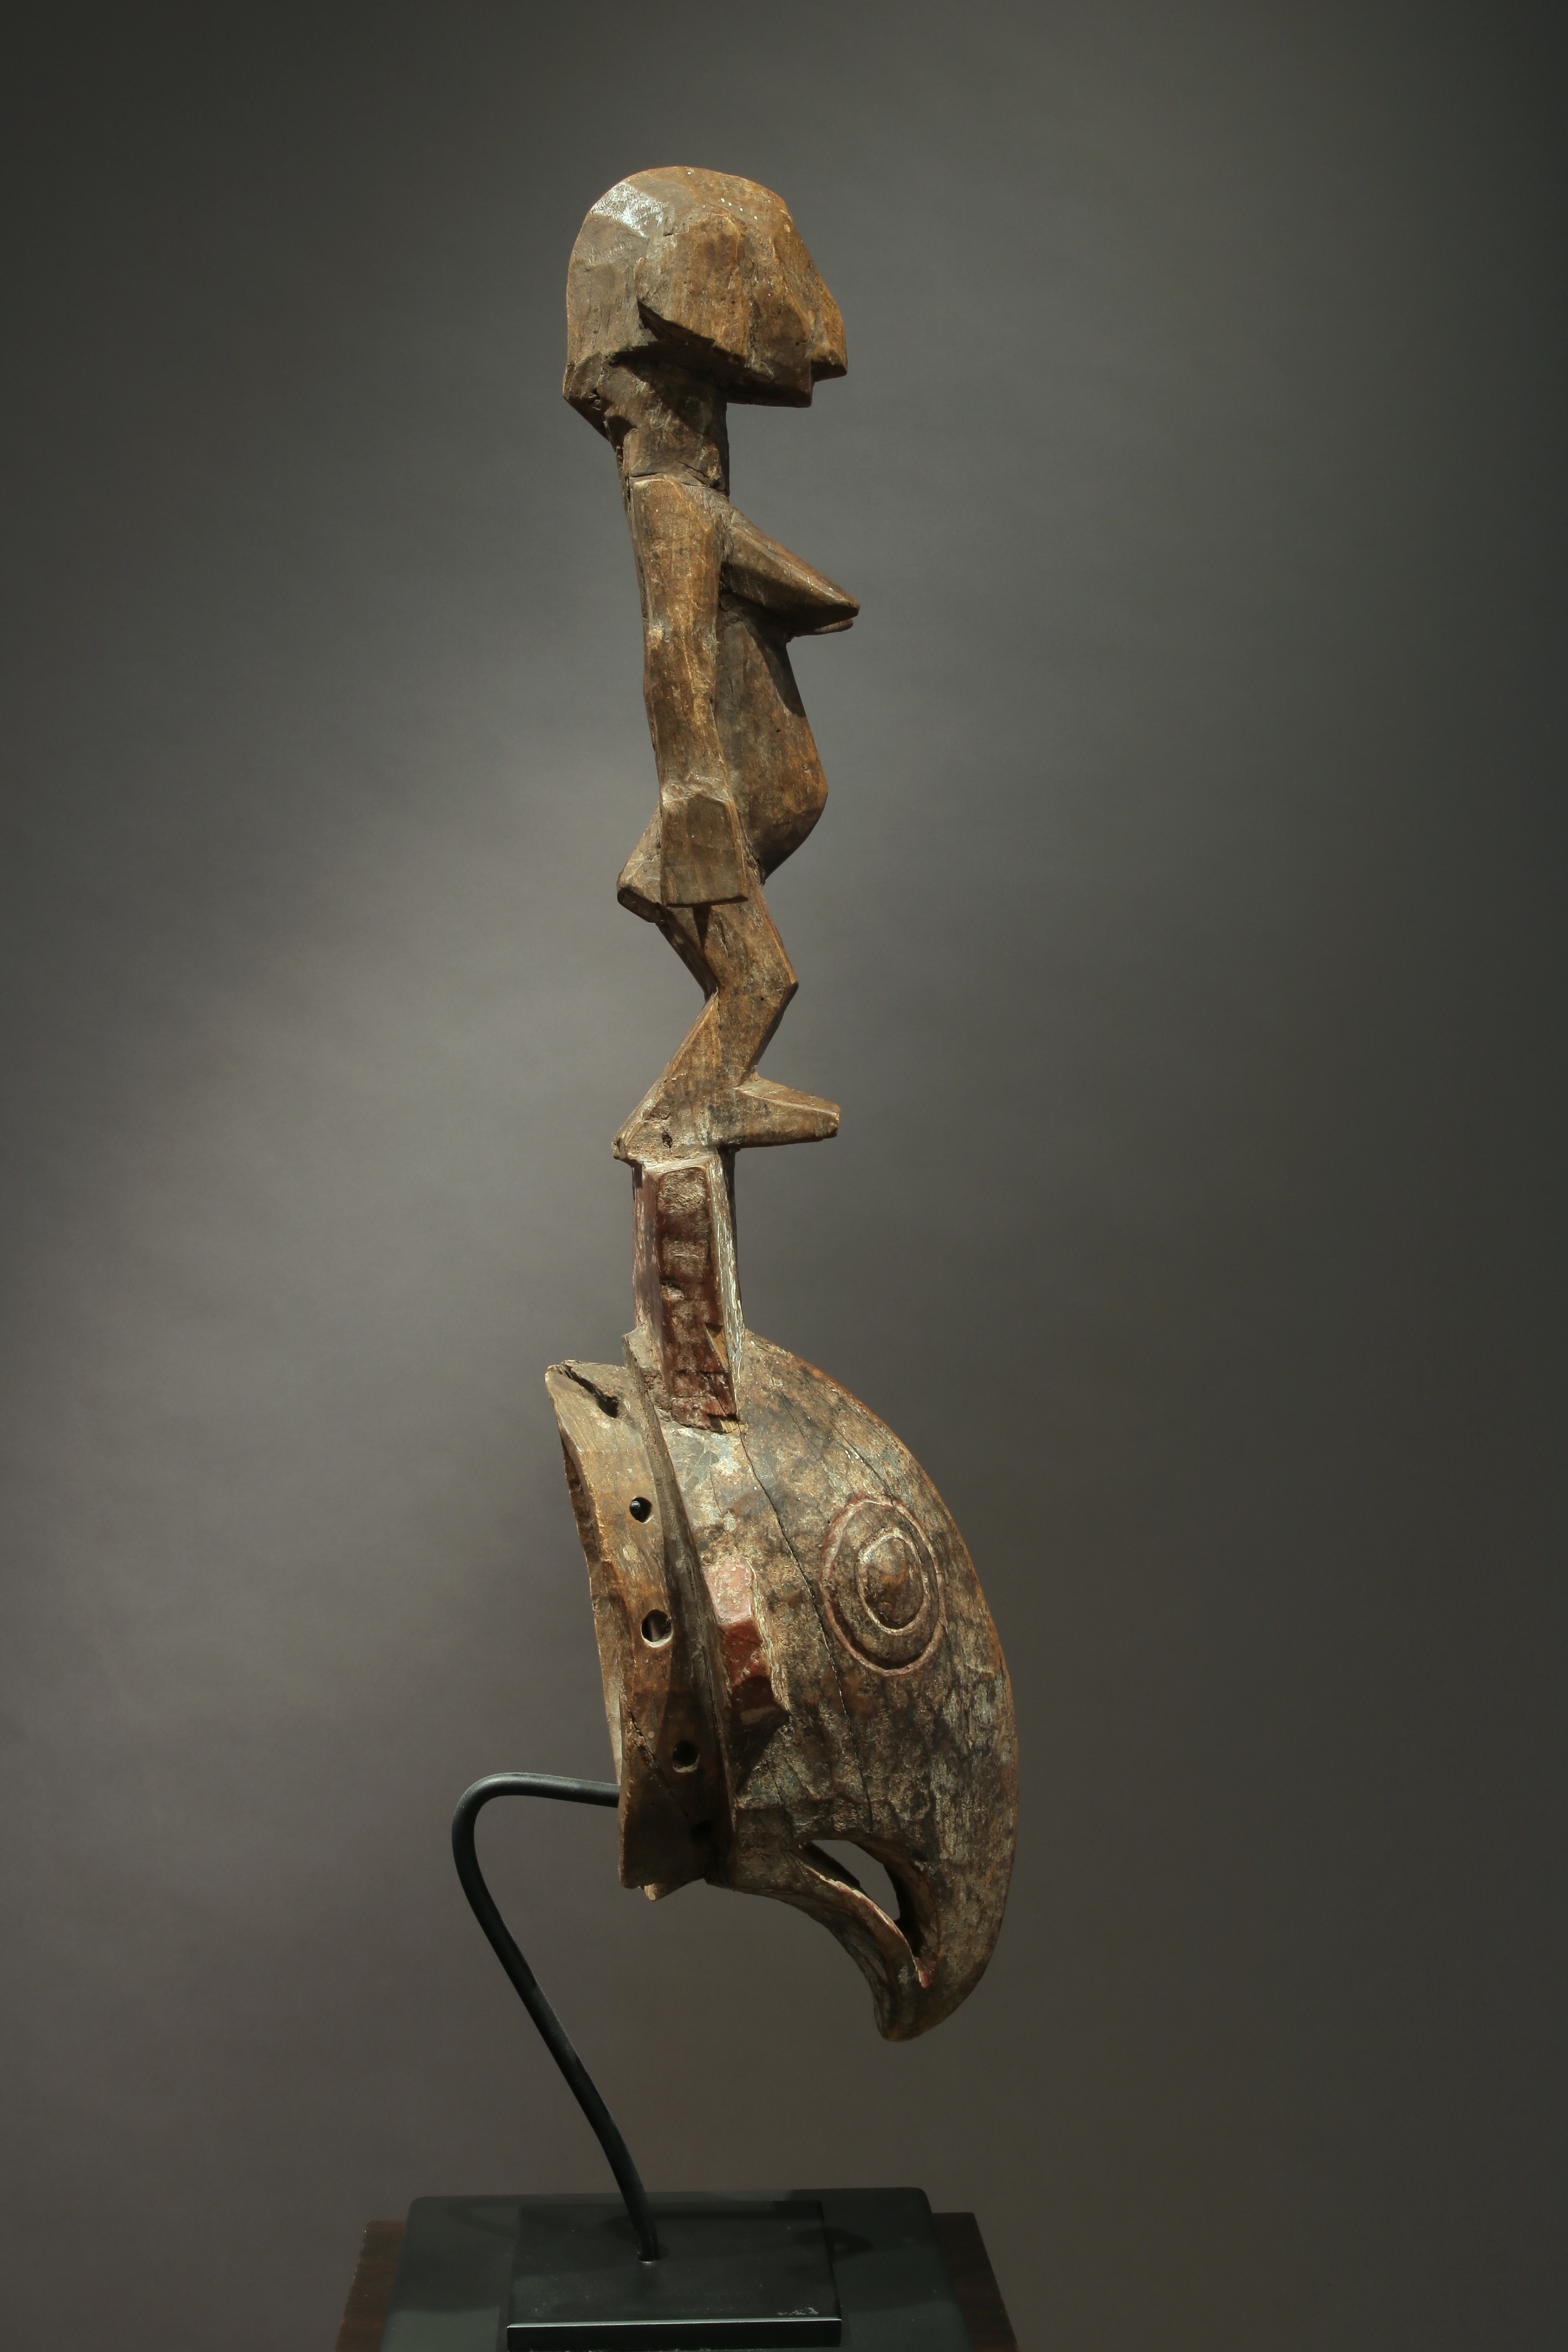 Bird mask with figure on top